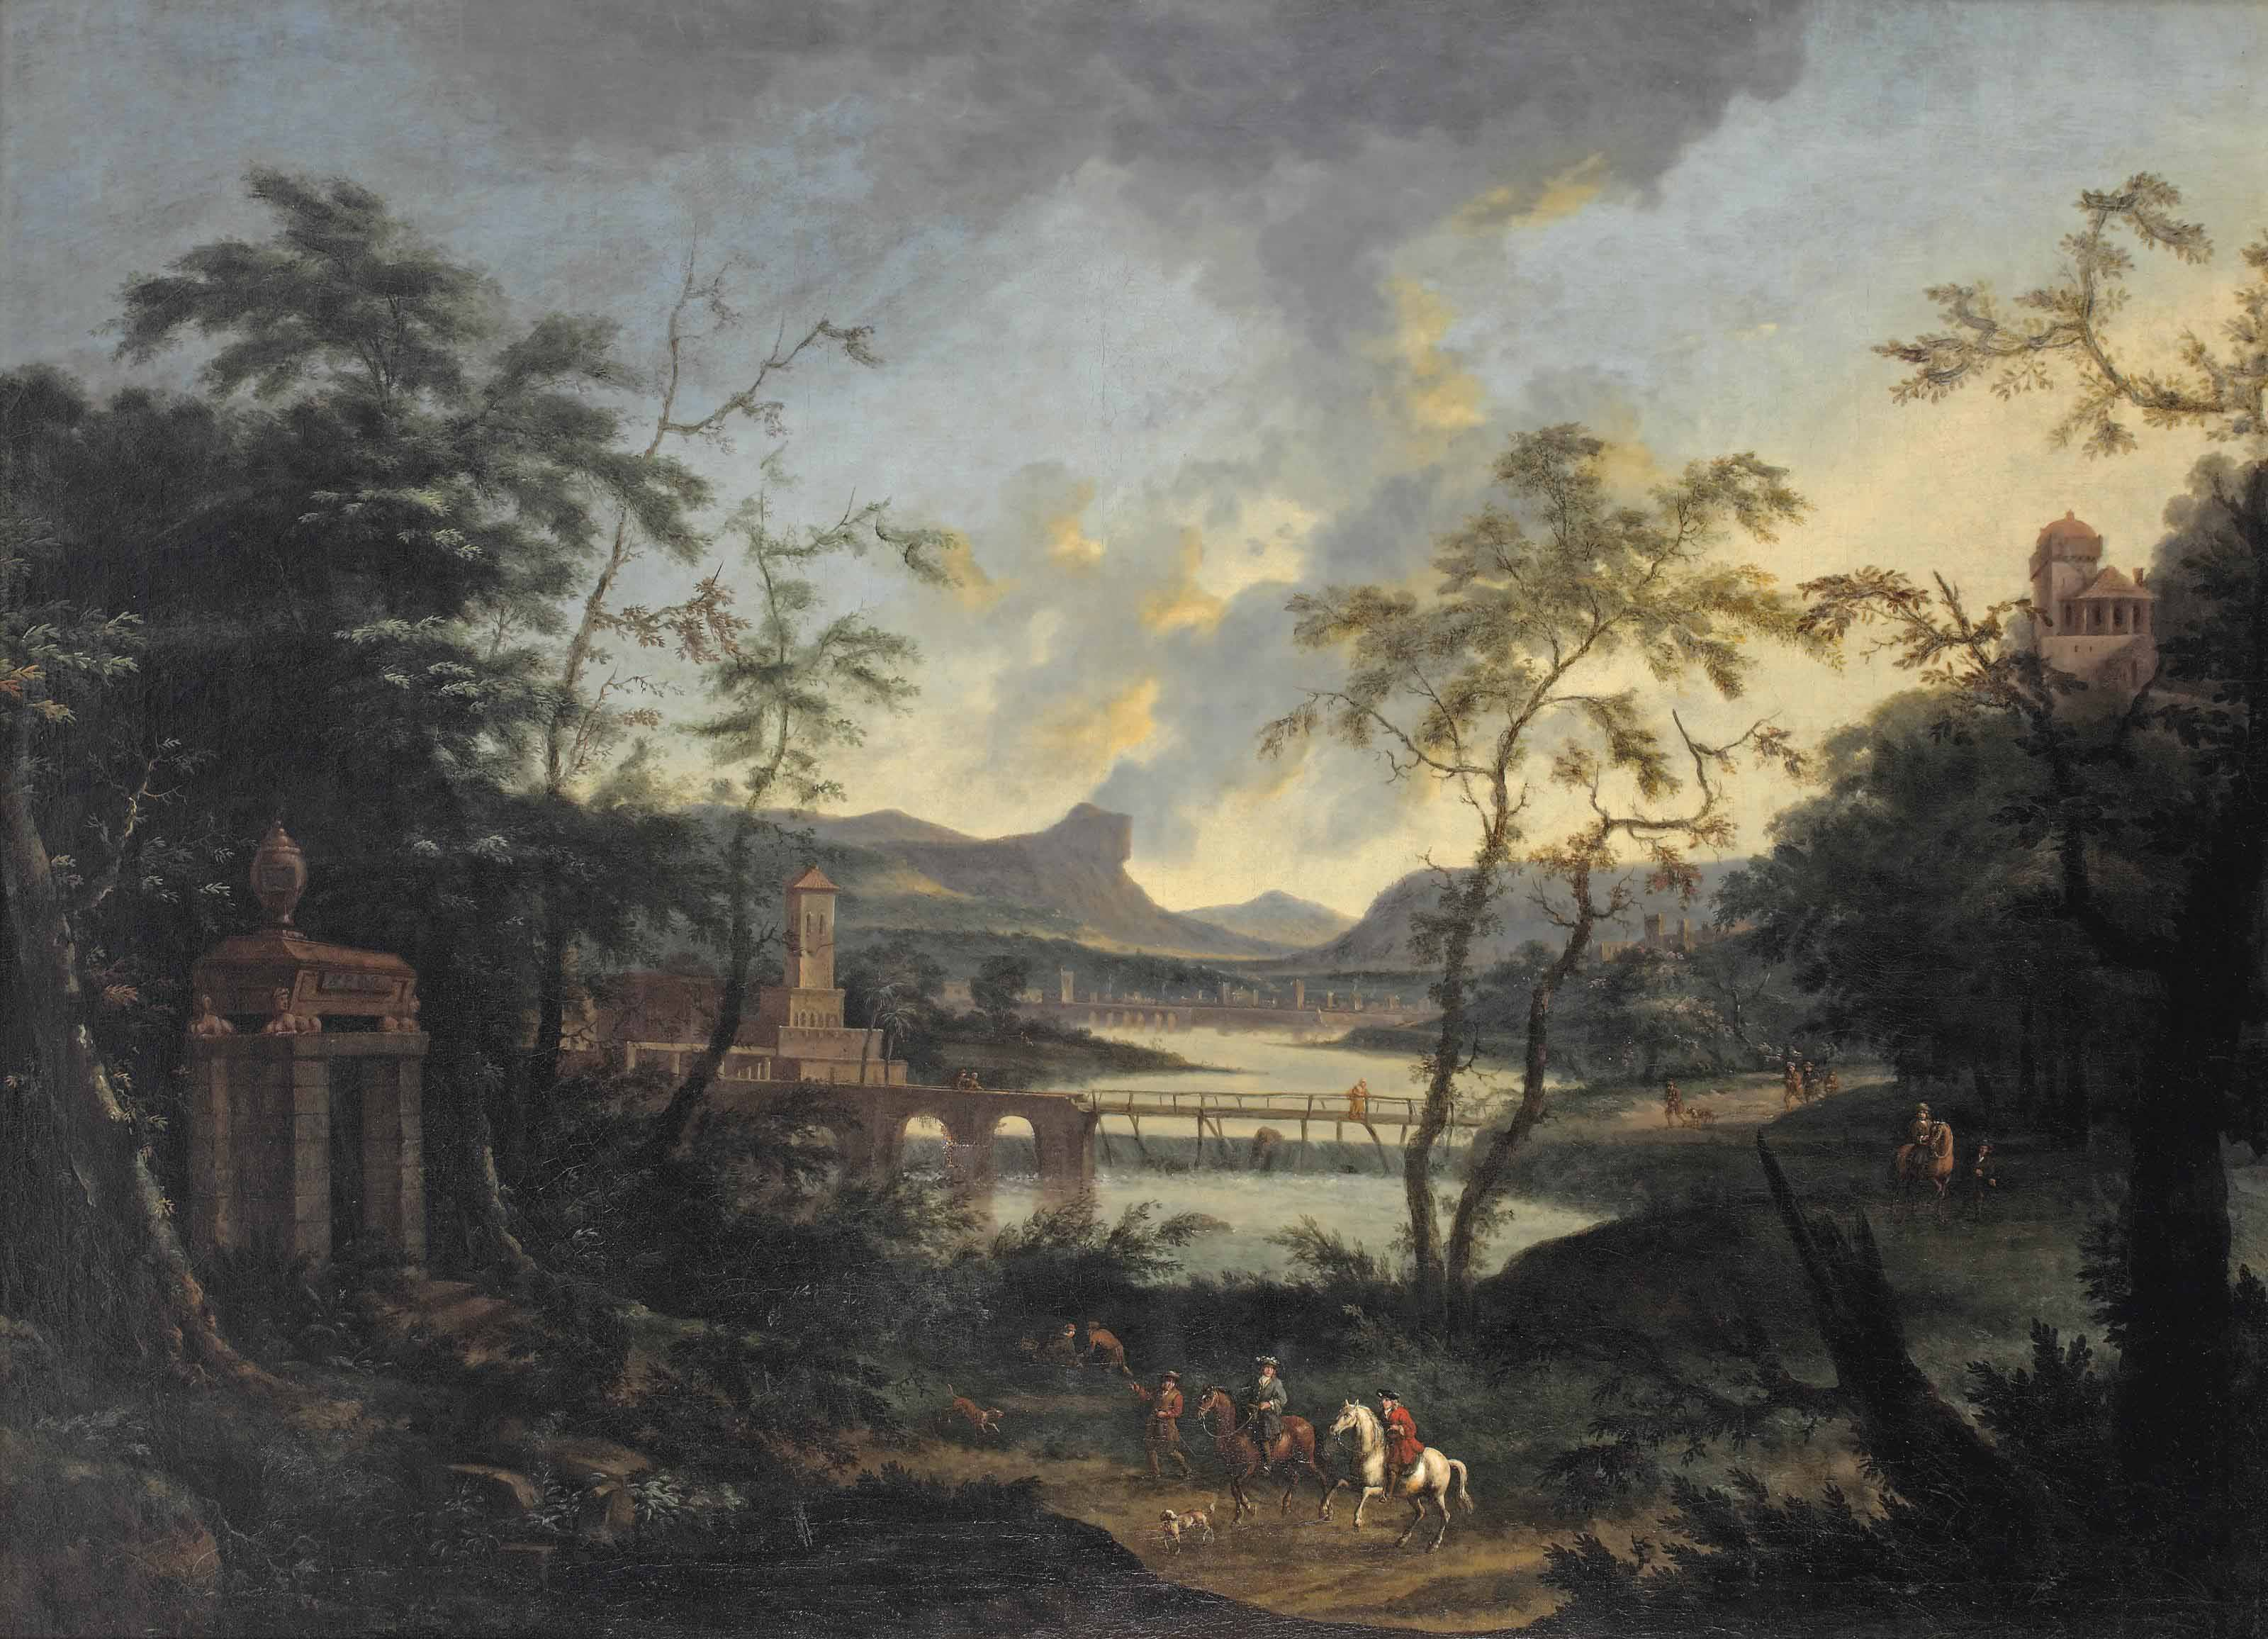 An Italianate river landscape with two equestrian figures, peasants and dogs on a wooded path, a town beyond